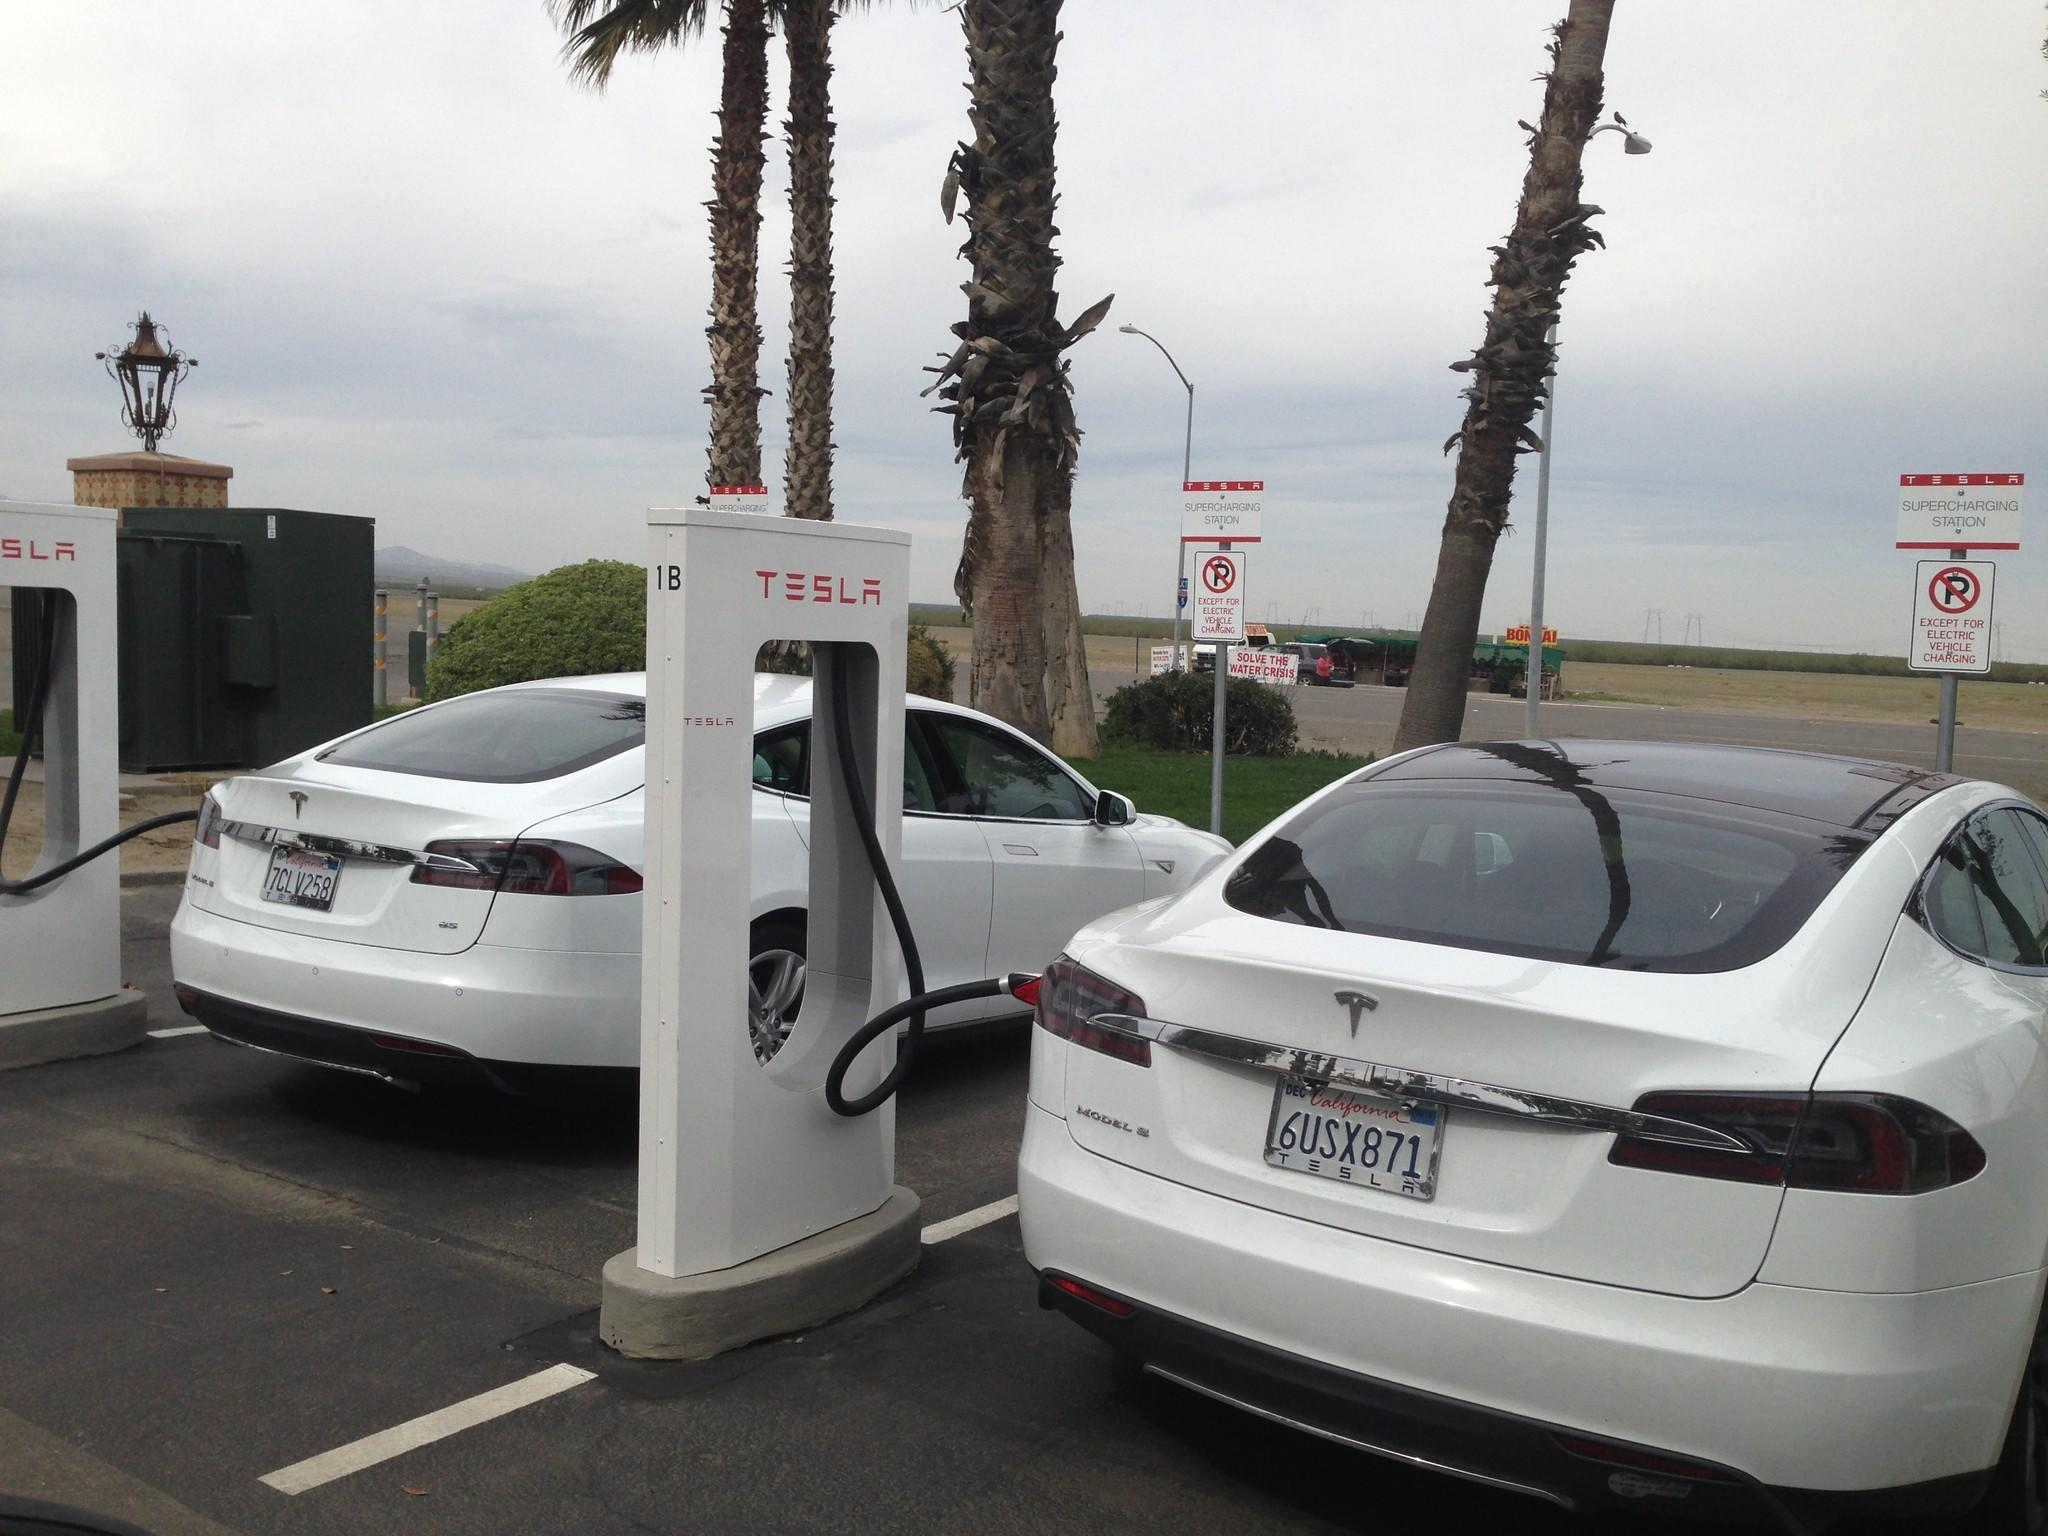 A pair of Teslas suck up some electricity at a charging station near Harris Ranch, Calif.